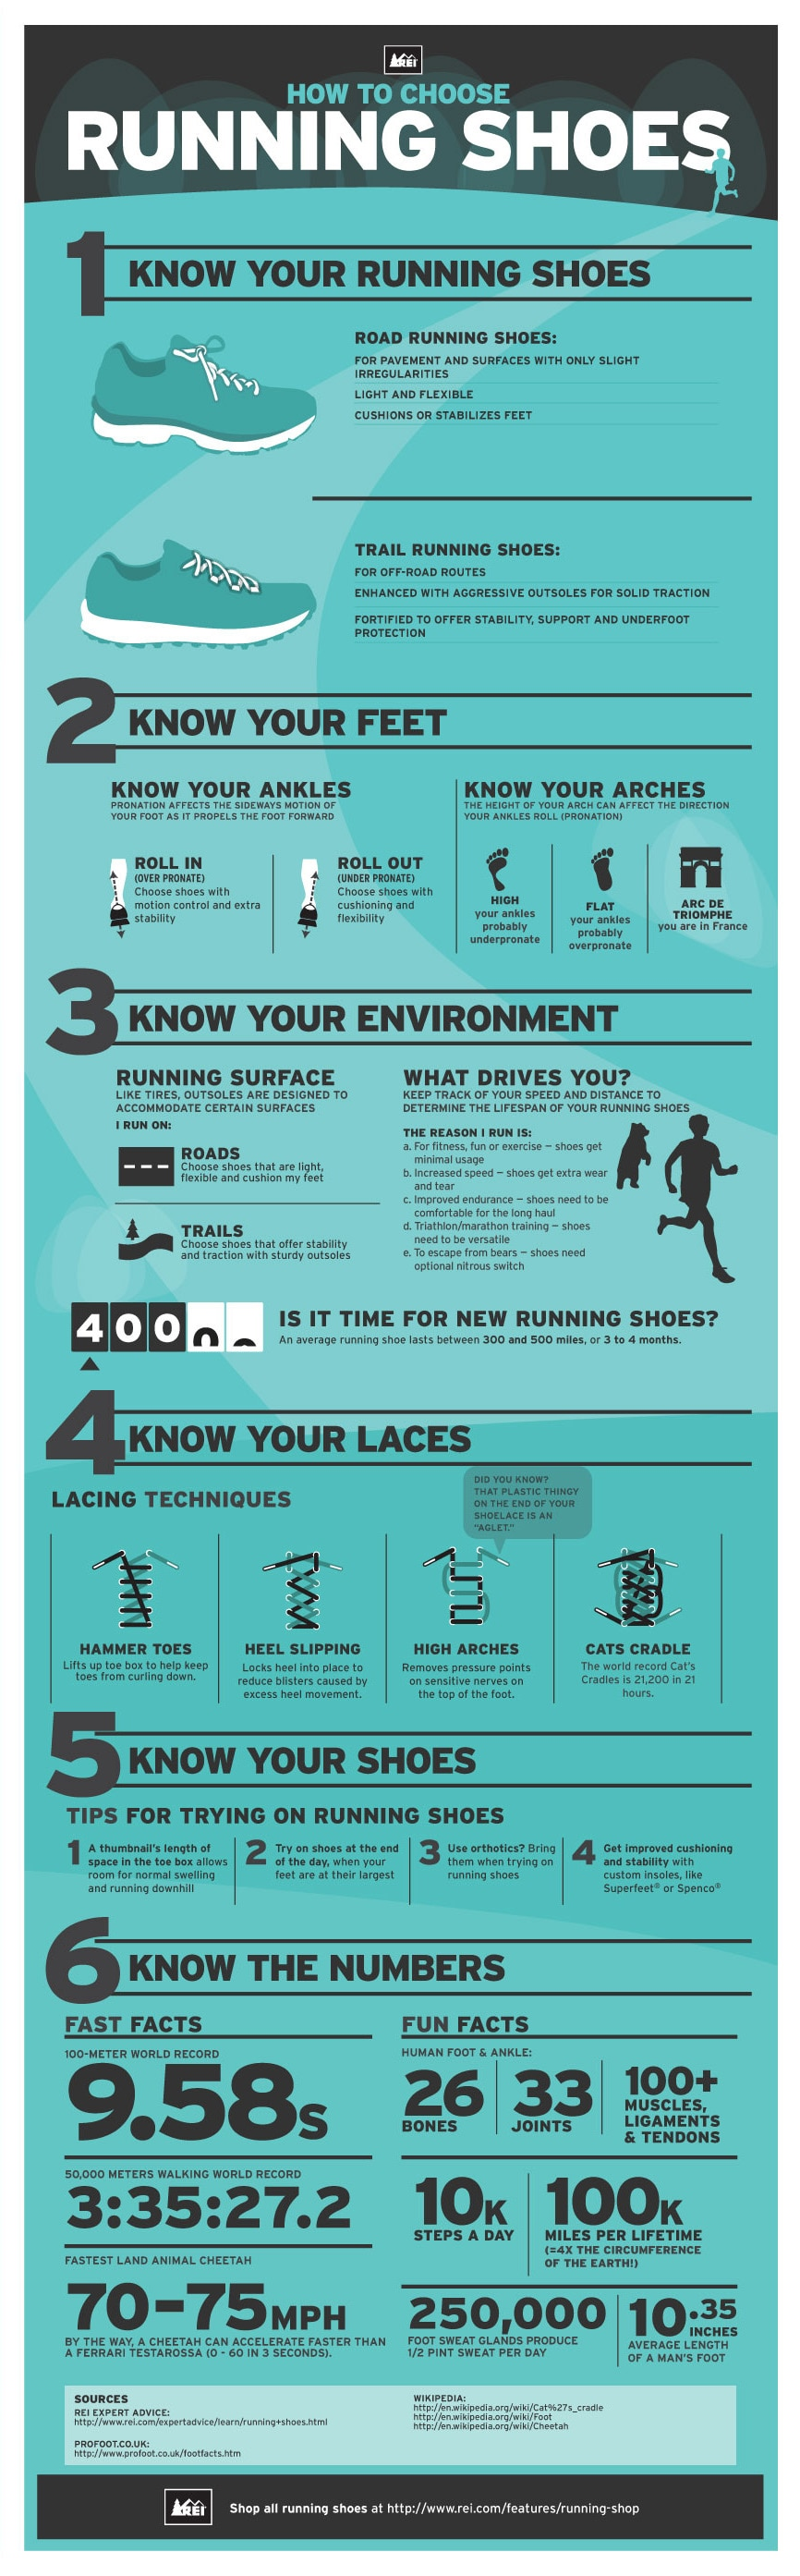 Running Shoes Infographic: How to Choose the Best Running Shoes